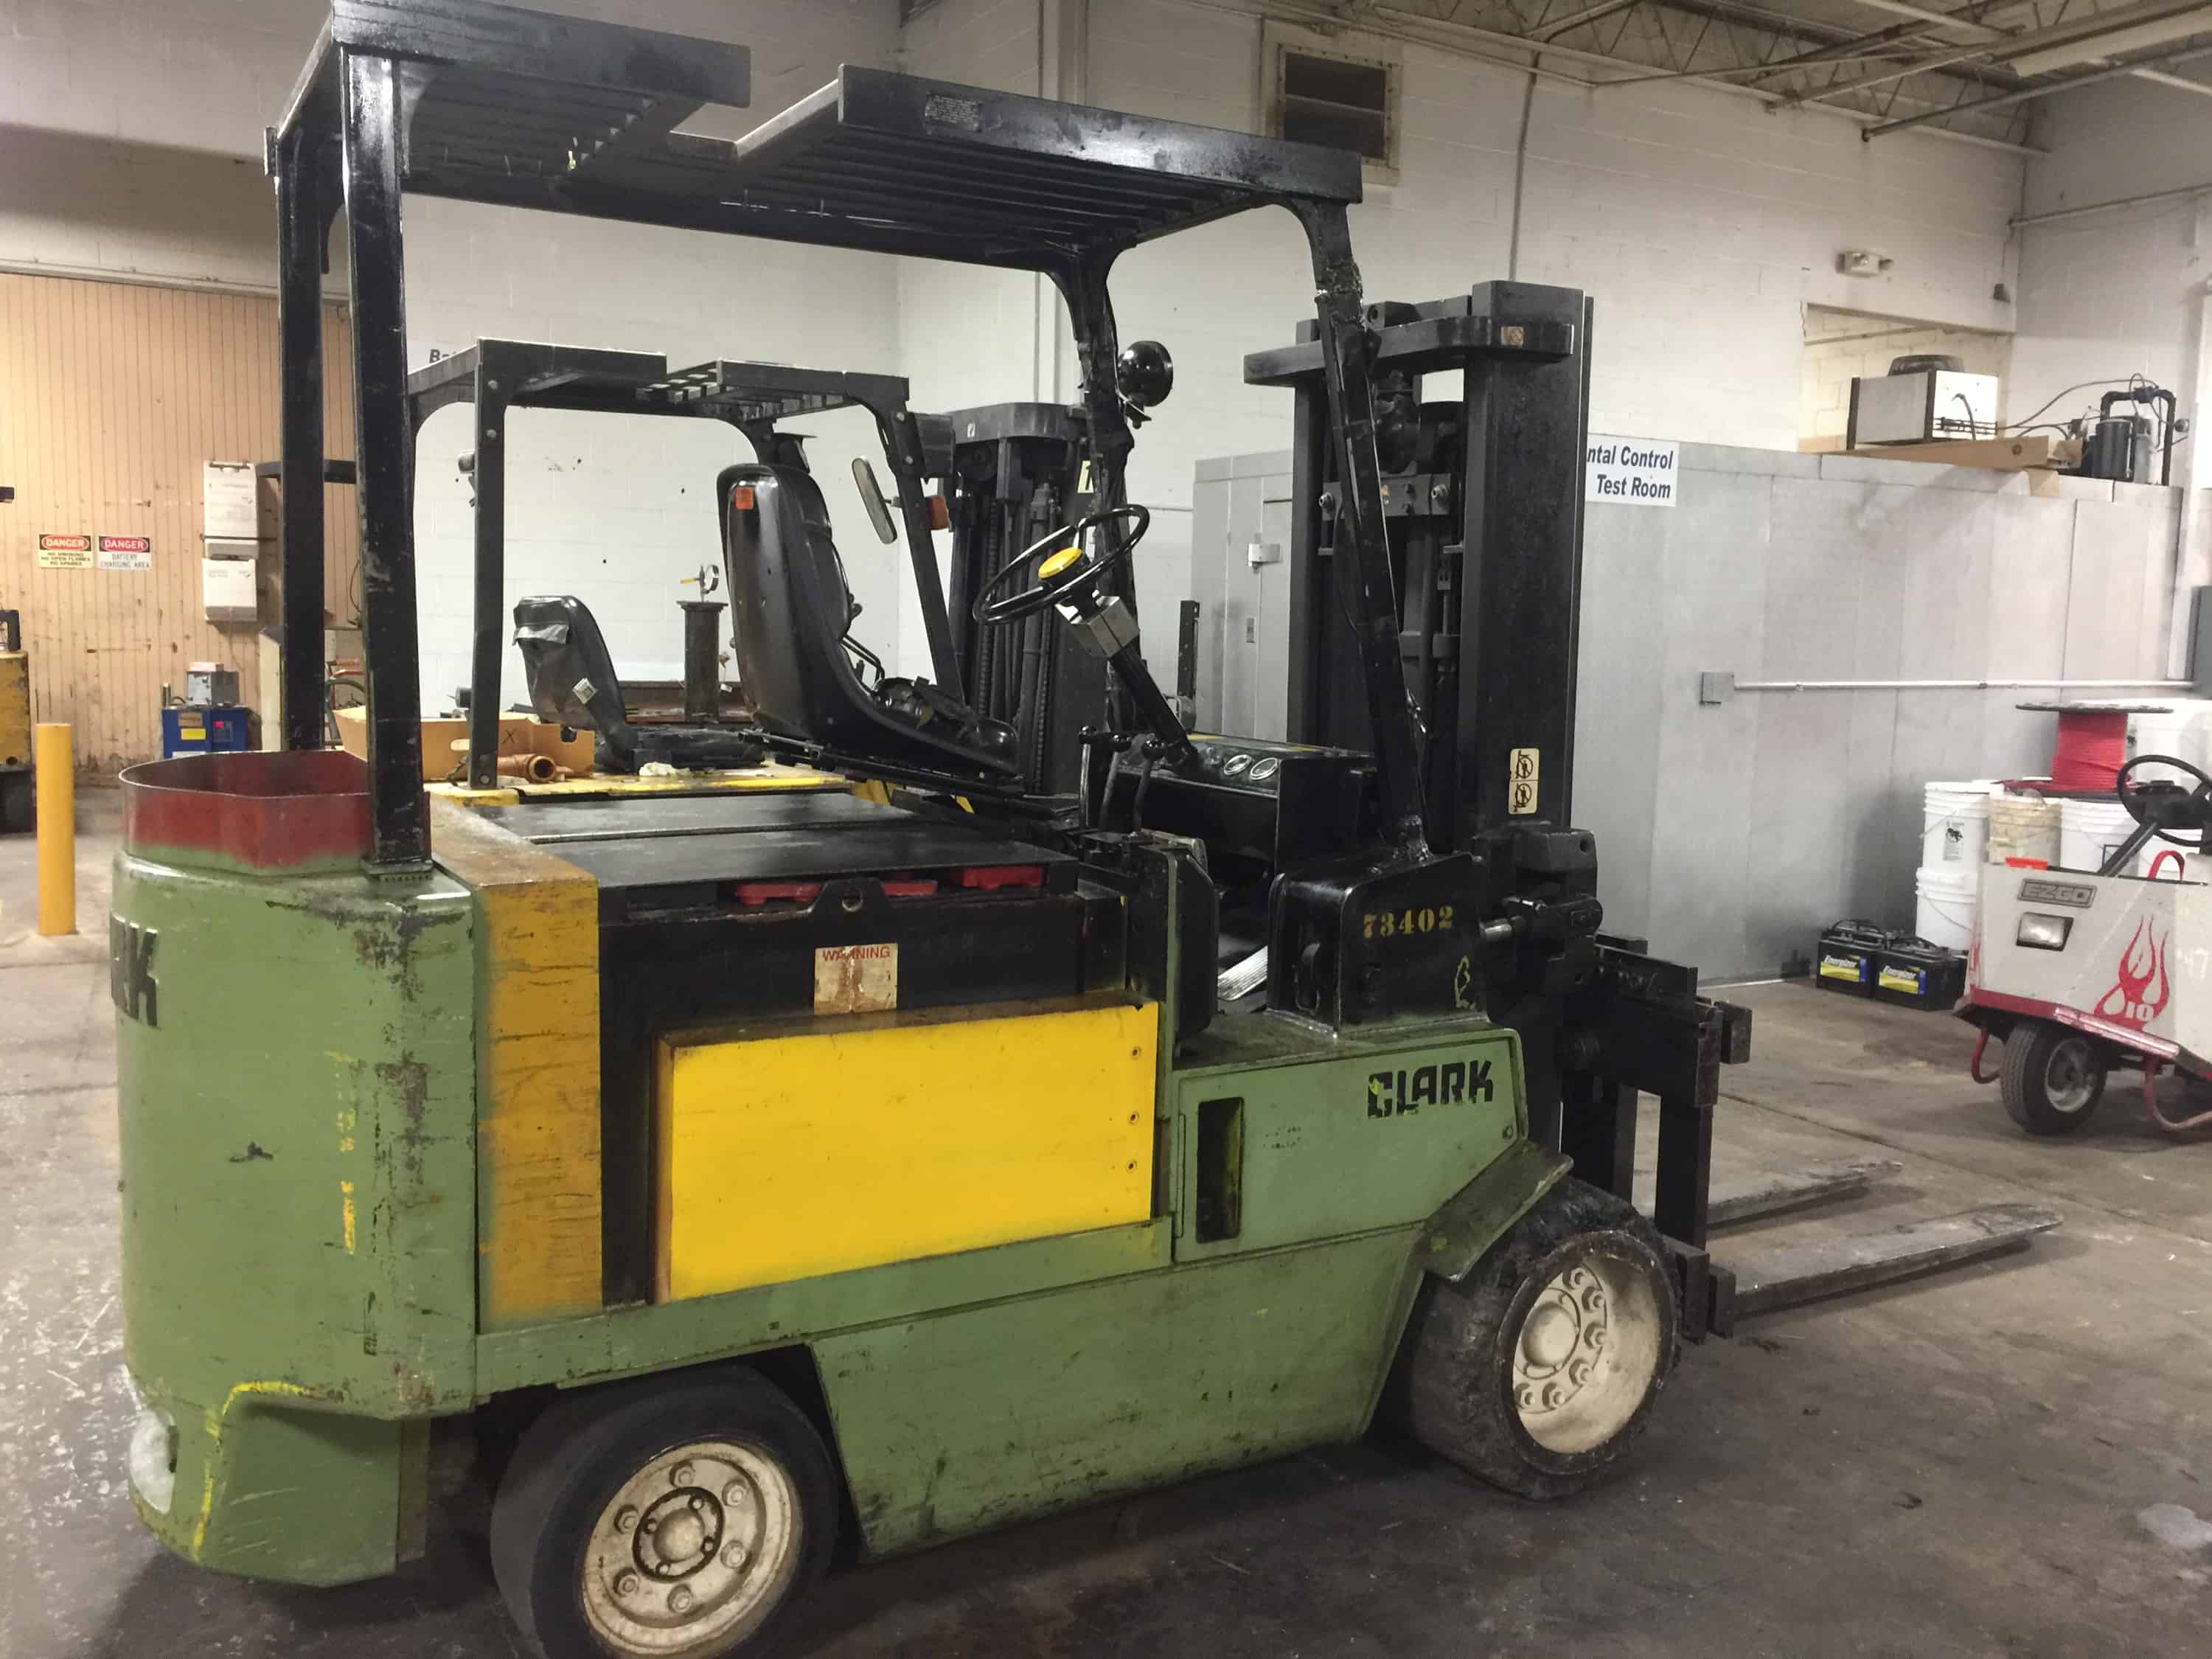 Clark Heavy duty 8000 pound Sit Down Forklift Truck battery operated. Battery week (Rigging and loading fees included in the selling price)(Located in Iowa)***EUSA***